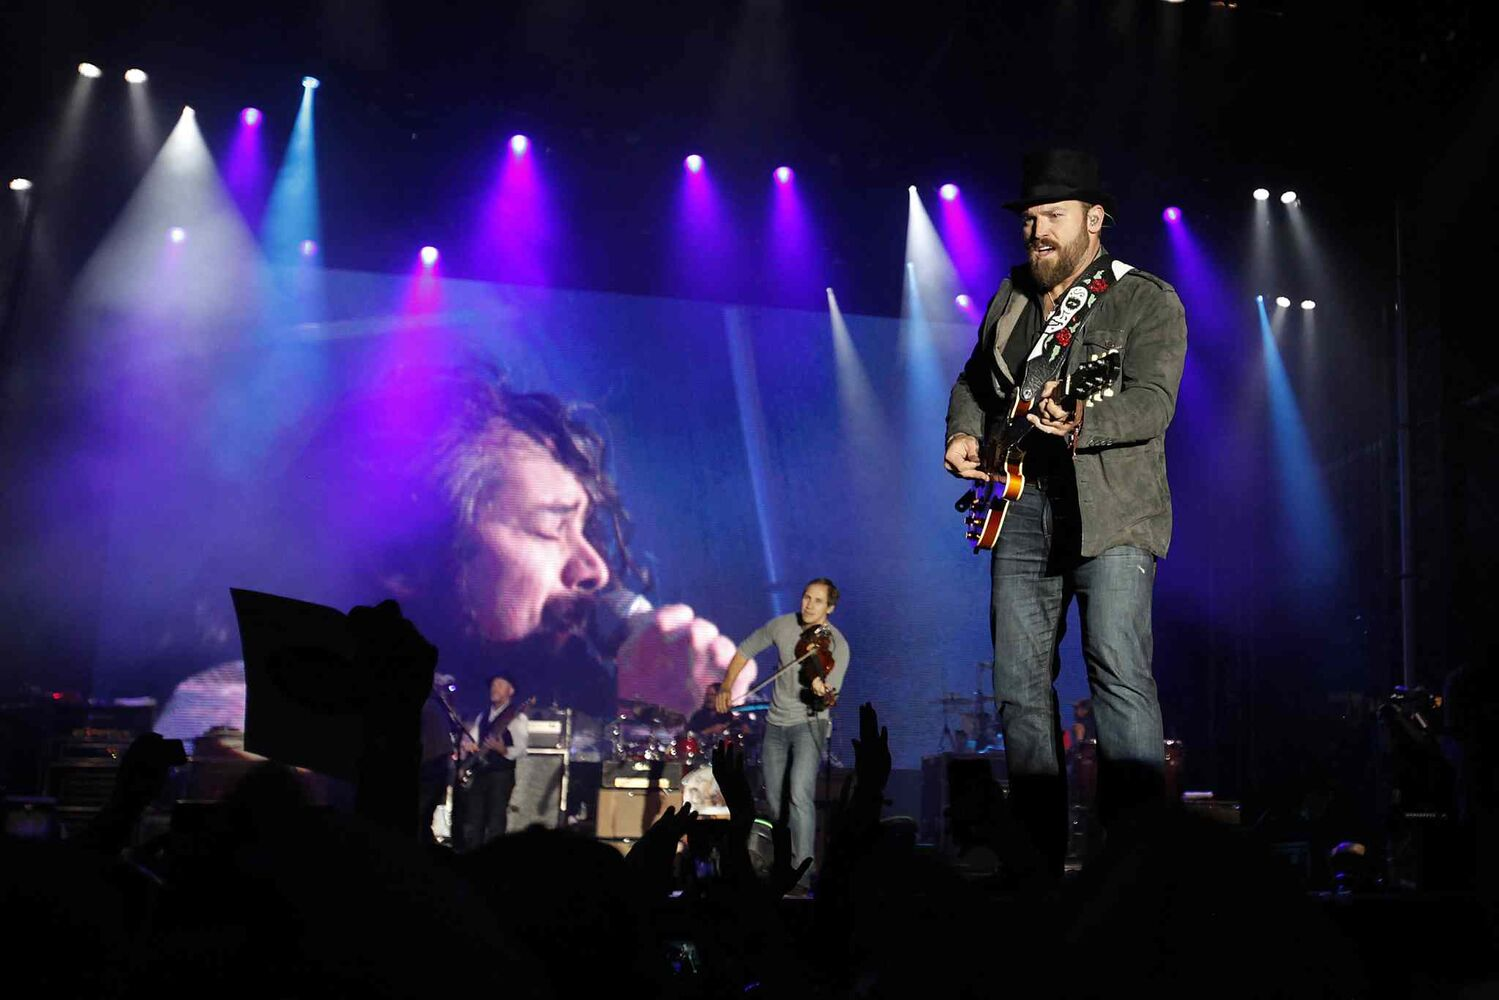 Zac Brown Band performs at Prairie Jam. (JOHN WOODS / WINNIPEG FREE PRESS)